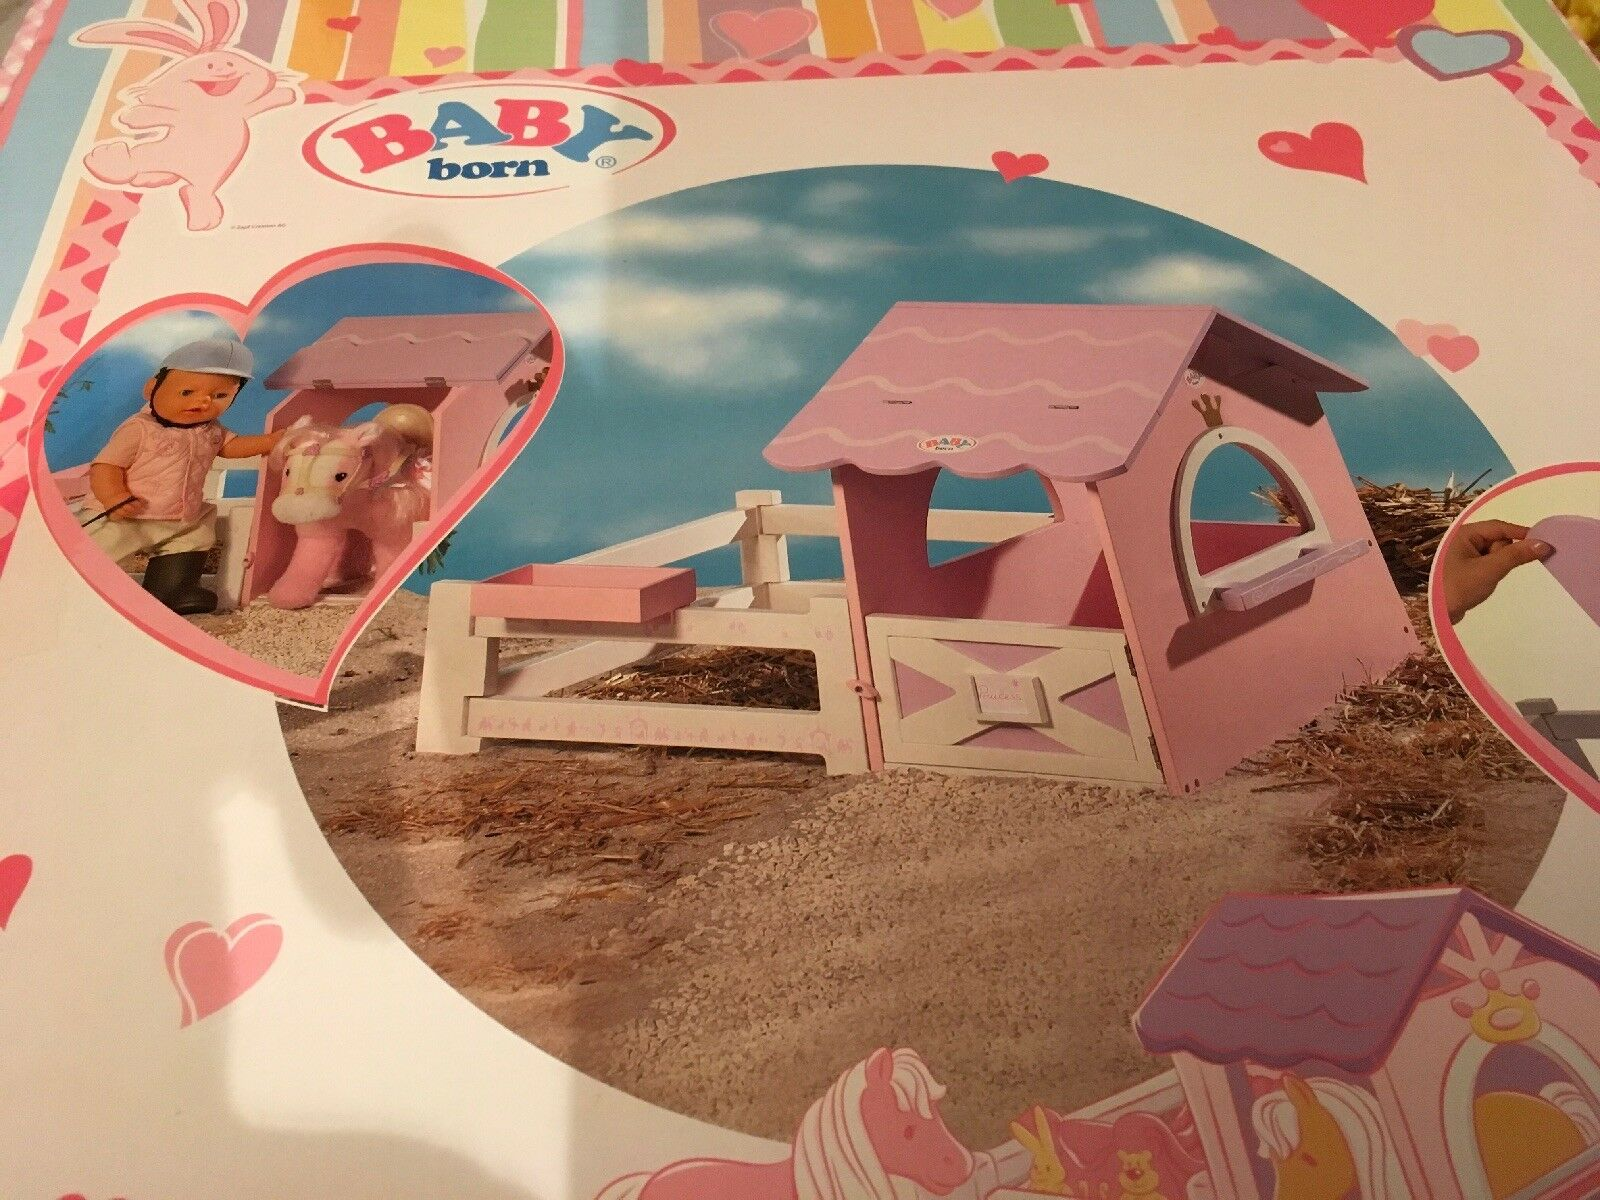 BNIB Zapf Creation Baby Born Rosa Wooden Horse Stable